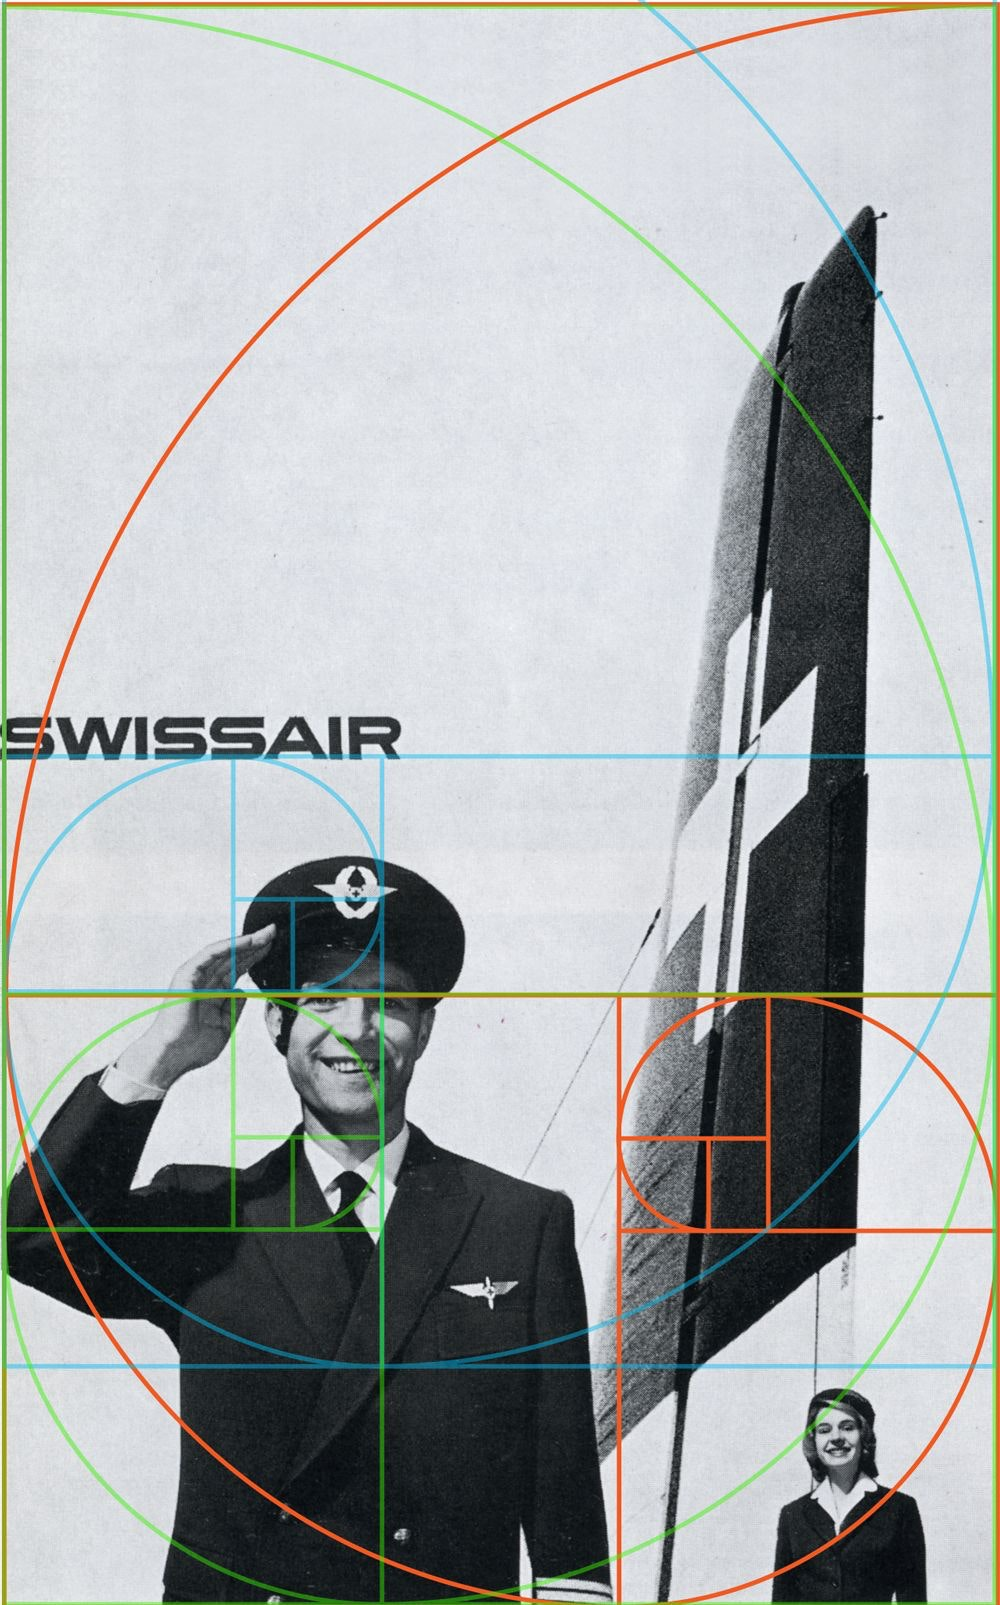 Golden spirals and rectangles are overlaid on a print ad featuring a saluting airline pilot, stewardess and plane fin.